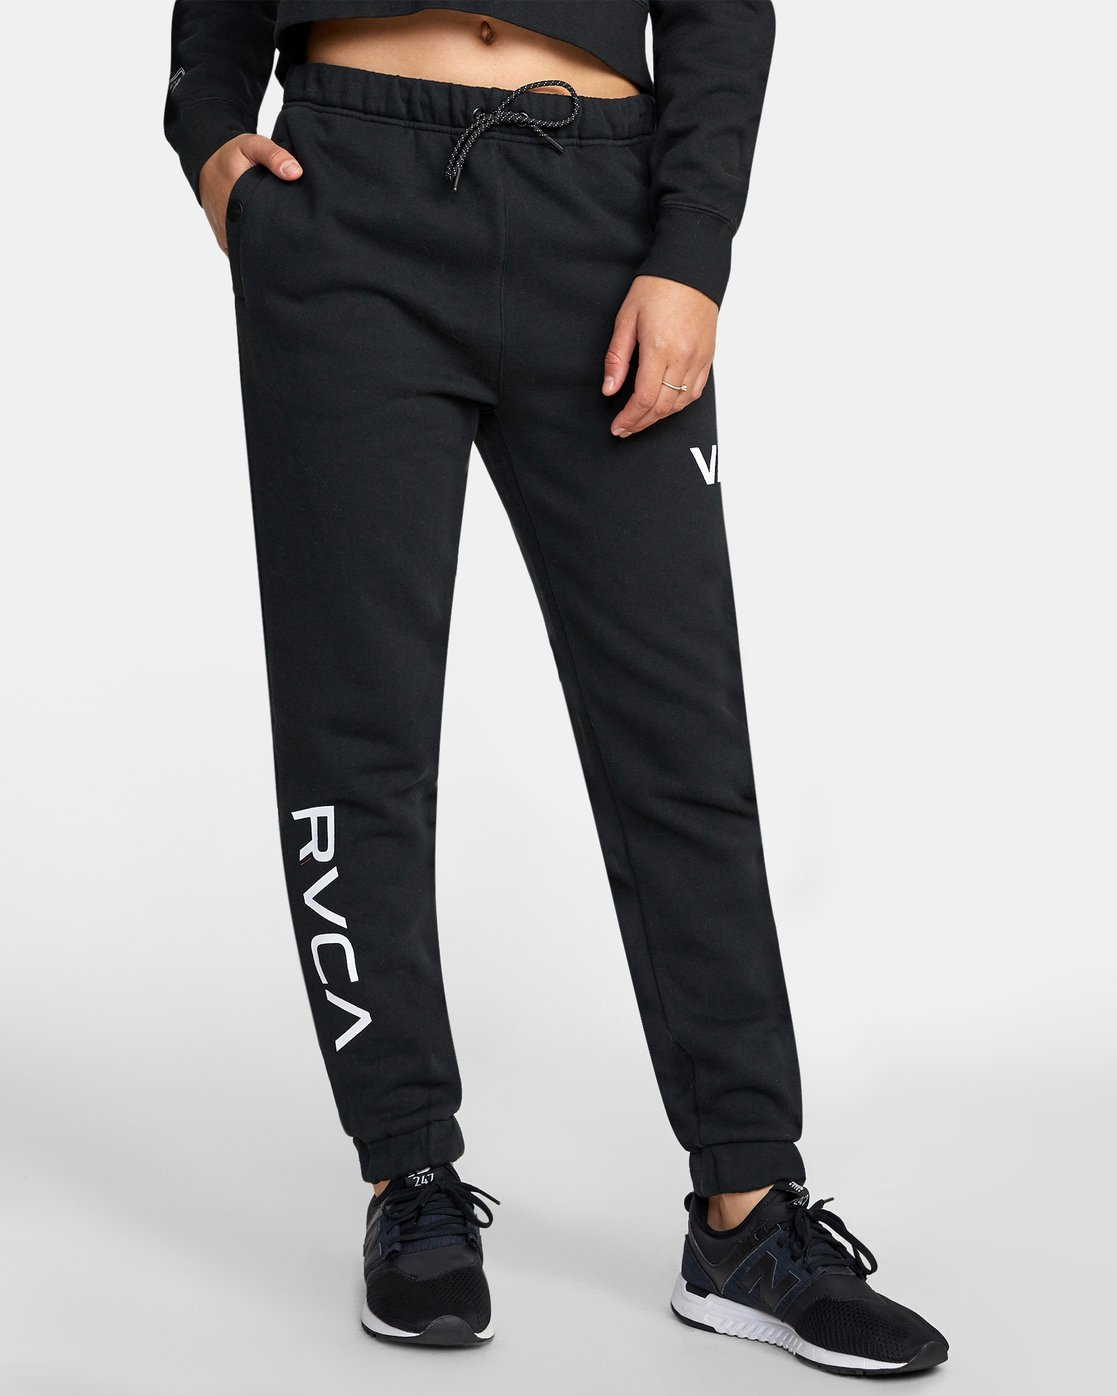 1 SPORT SWEATPANT Black T3071RSS RVCA